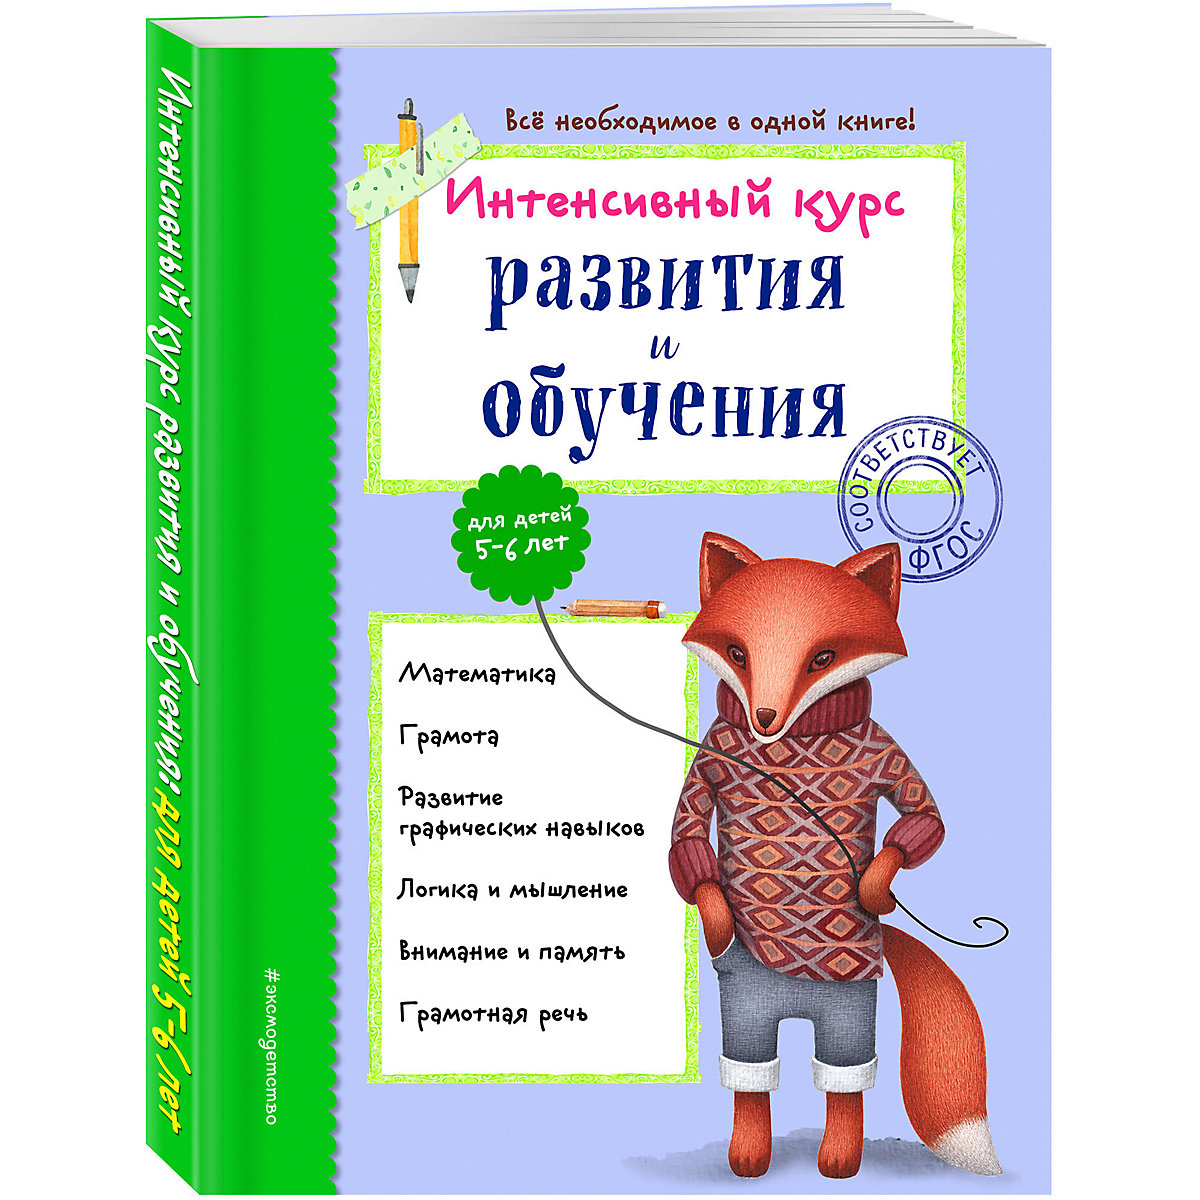 Books EKSMO 10376406 Children Education Encyclopedia Alphabet Dictionary Book For Baby MTpromo